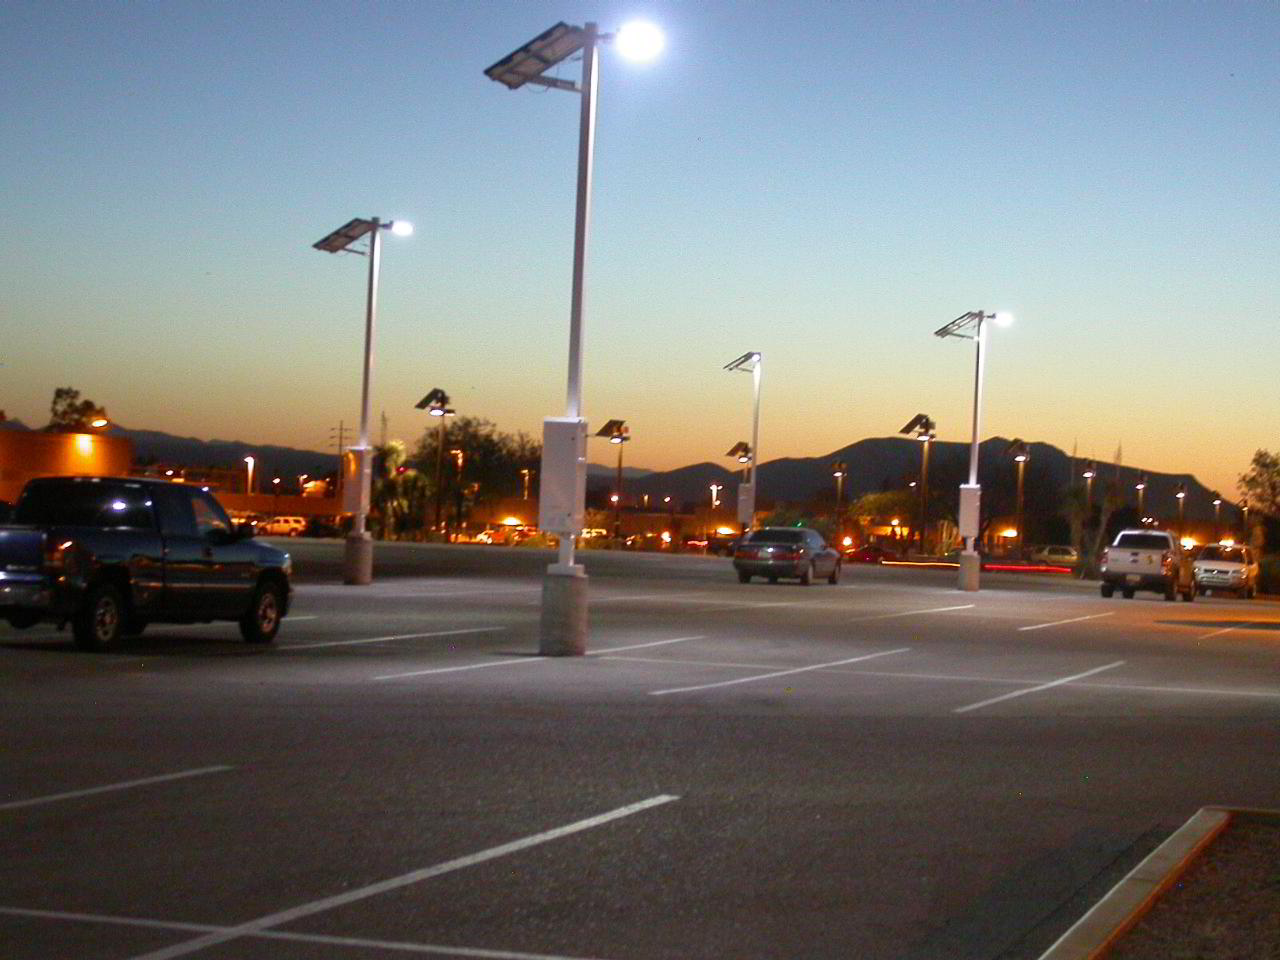 & Pole Lighting West Palm Beach - Parking Lot Lighting - LED azcodes.com